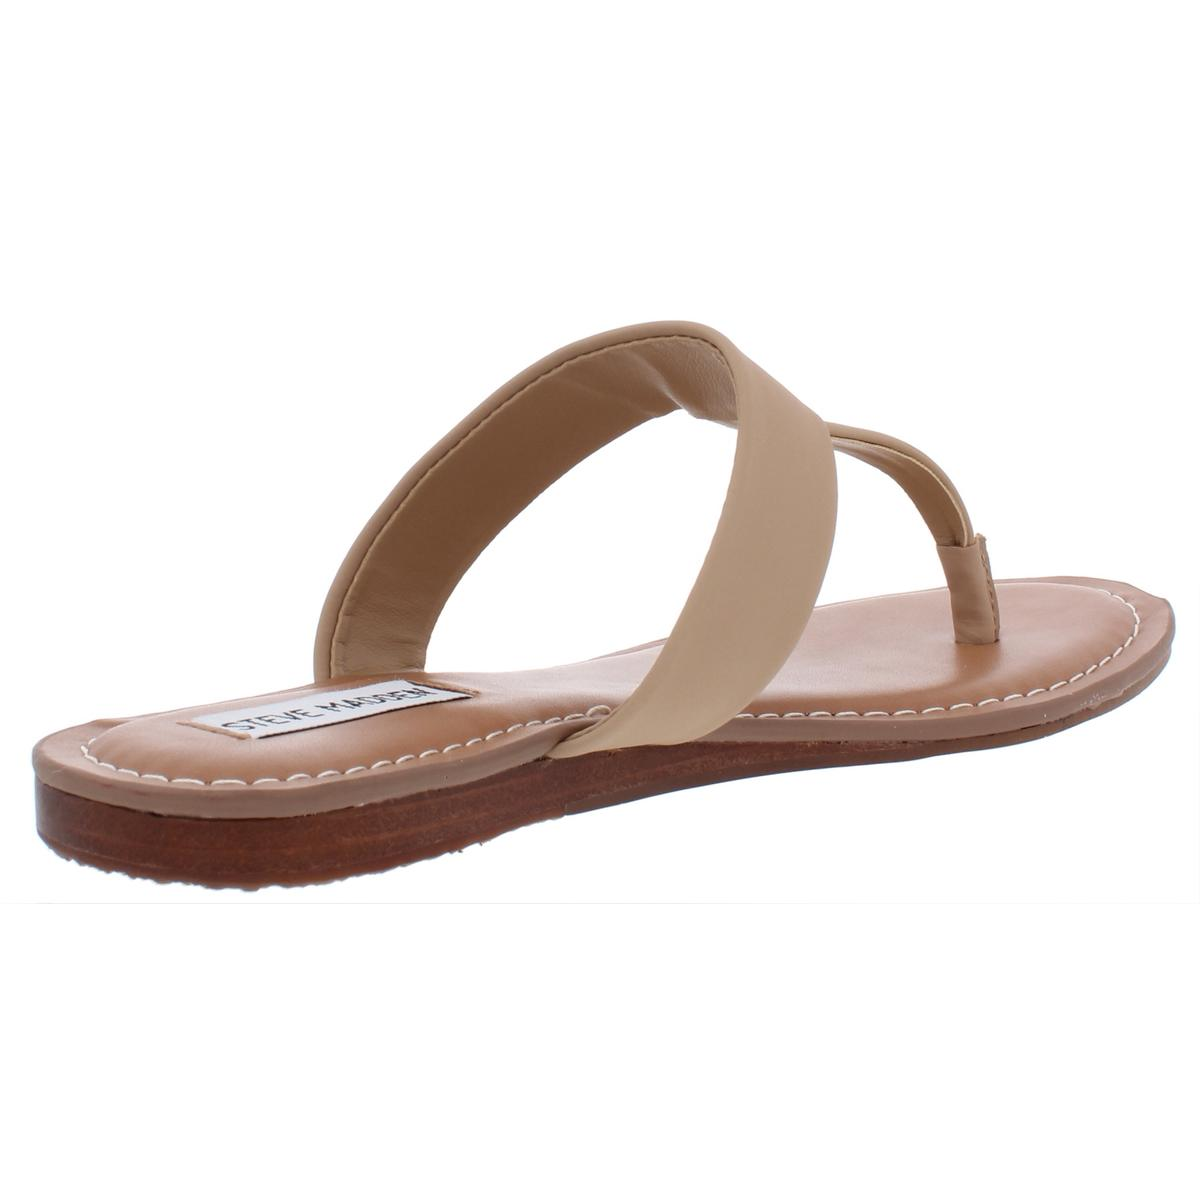 Steve-Madden-Womens-Vacay-Faux-Leather-Thong-Sandals-Flats-Shoes-BHFO-0099 thumbnail 6